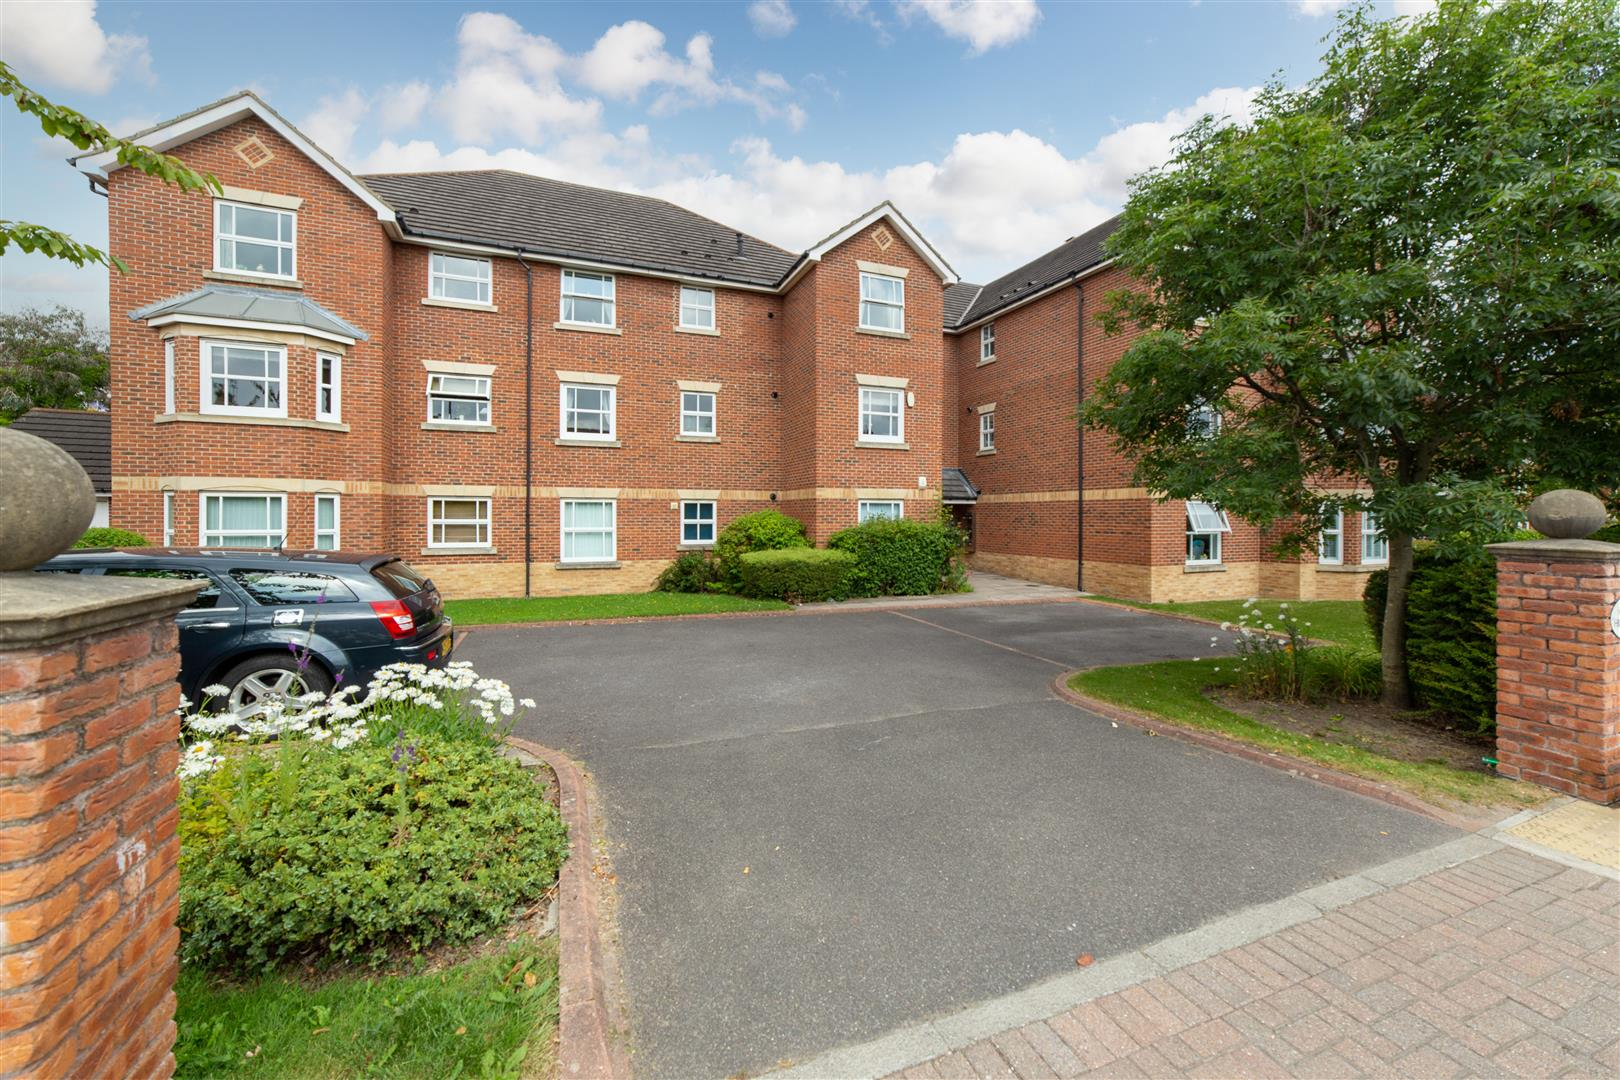 2 bed apartment for sale in Highbridge, Newcastle Upon Tyne, NE3